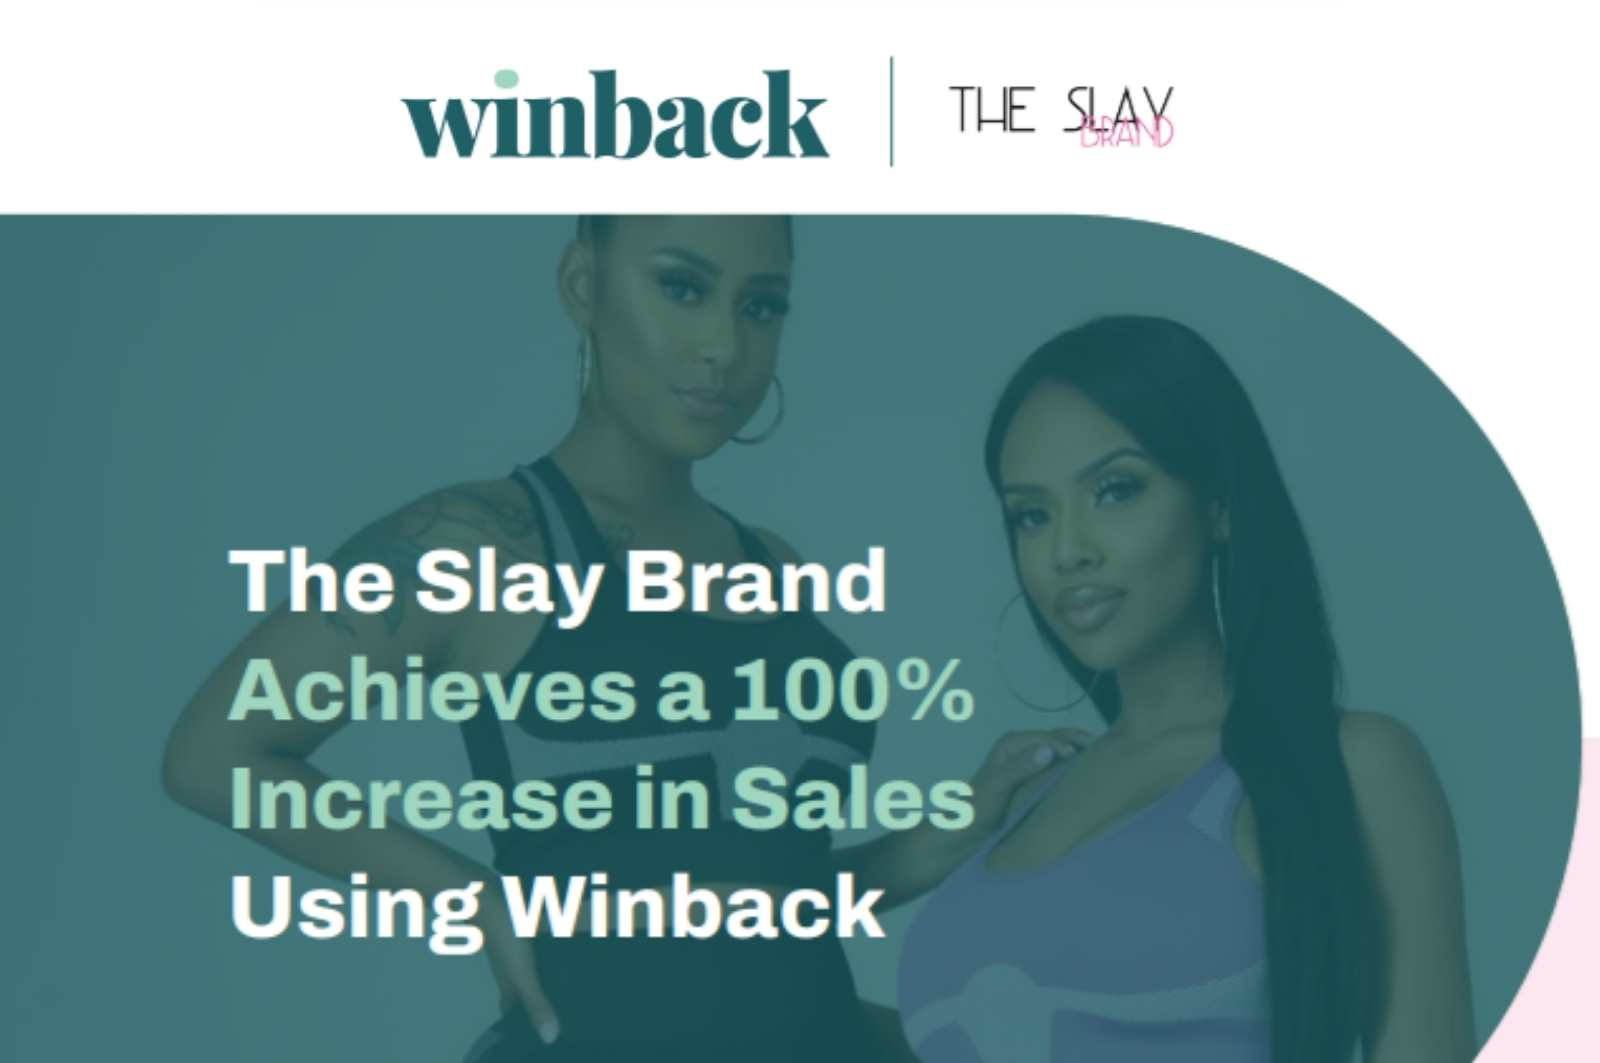 Slay the Day! How The Slay Brand Used Winback To Get More Sales